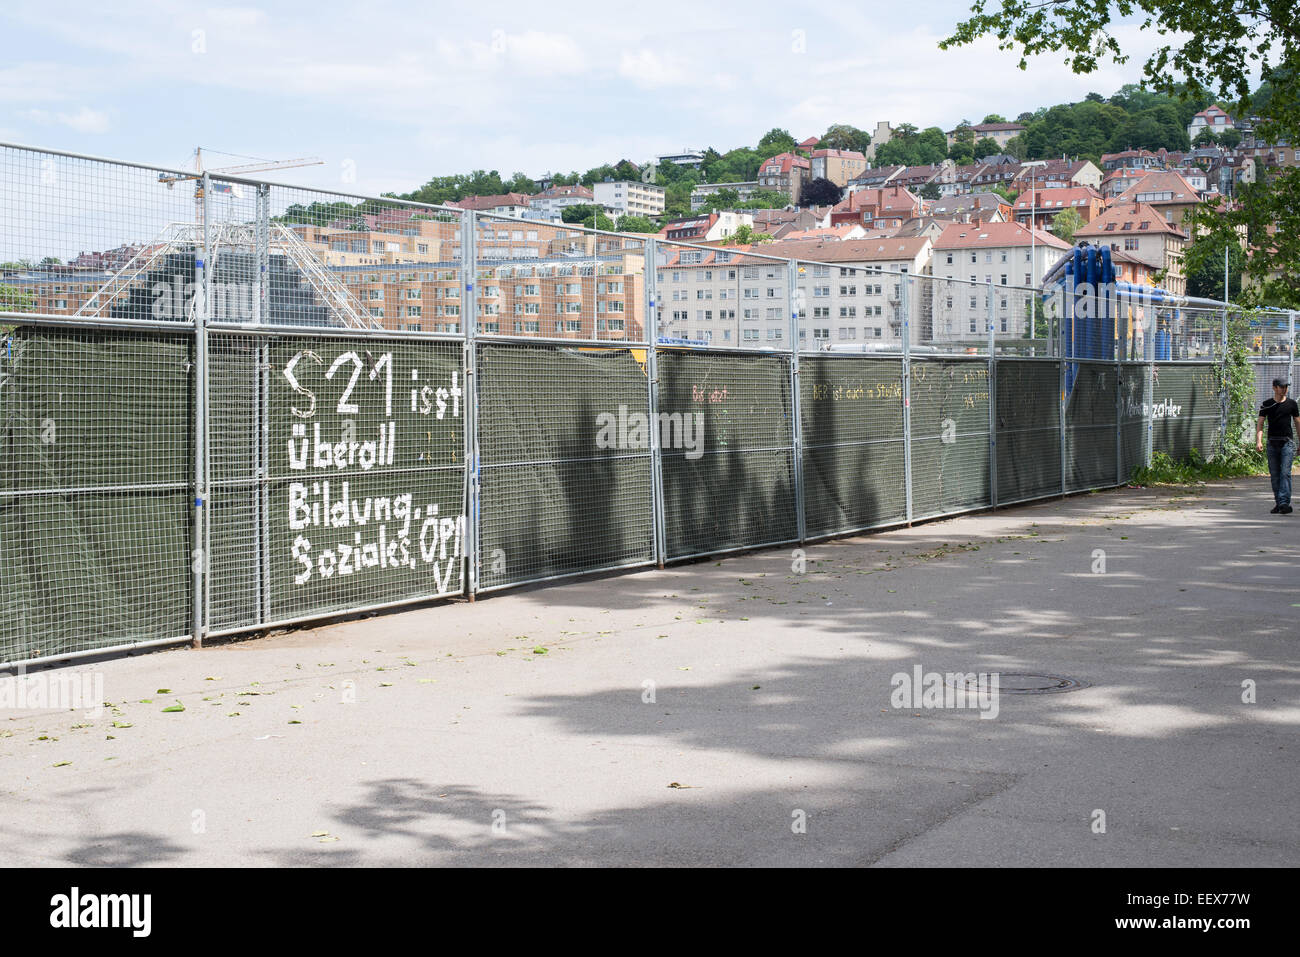 Stuttgart in Germany as seen from the train station S21 construction site - Stock Image